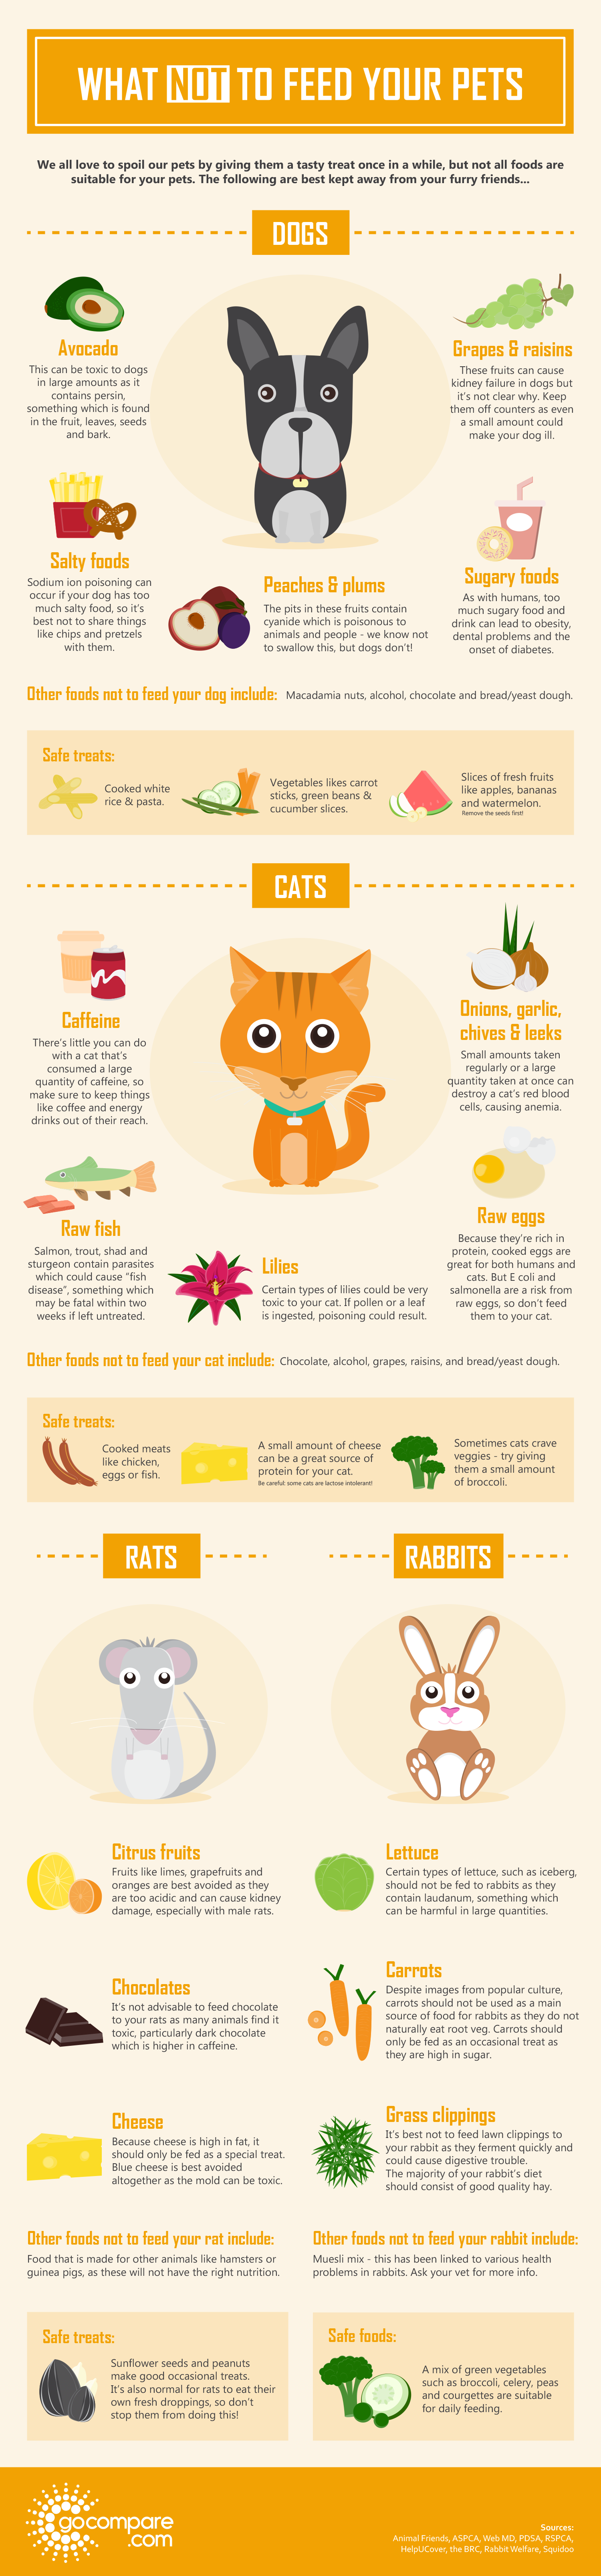 What not to feed your Pets